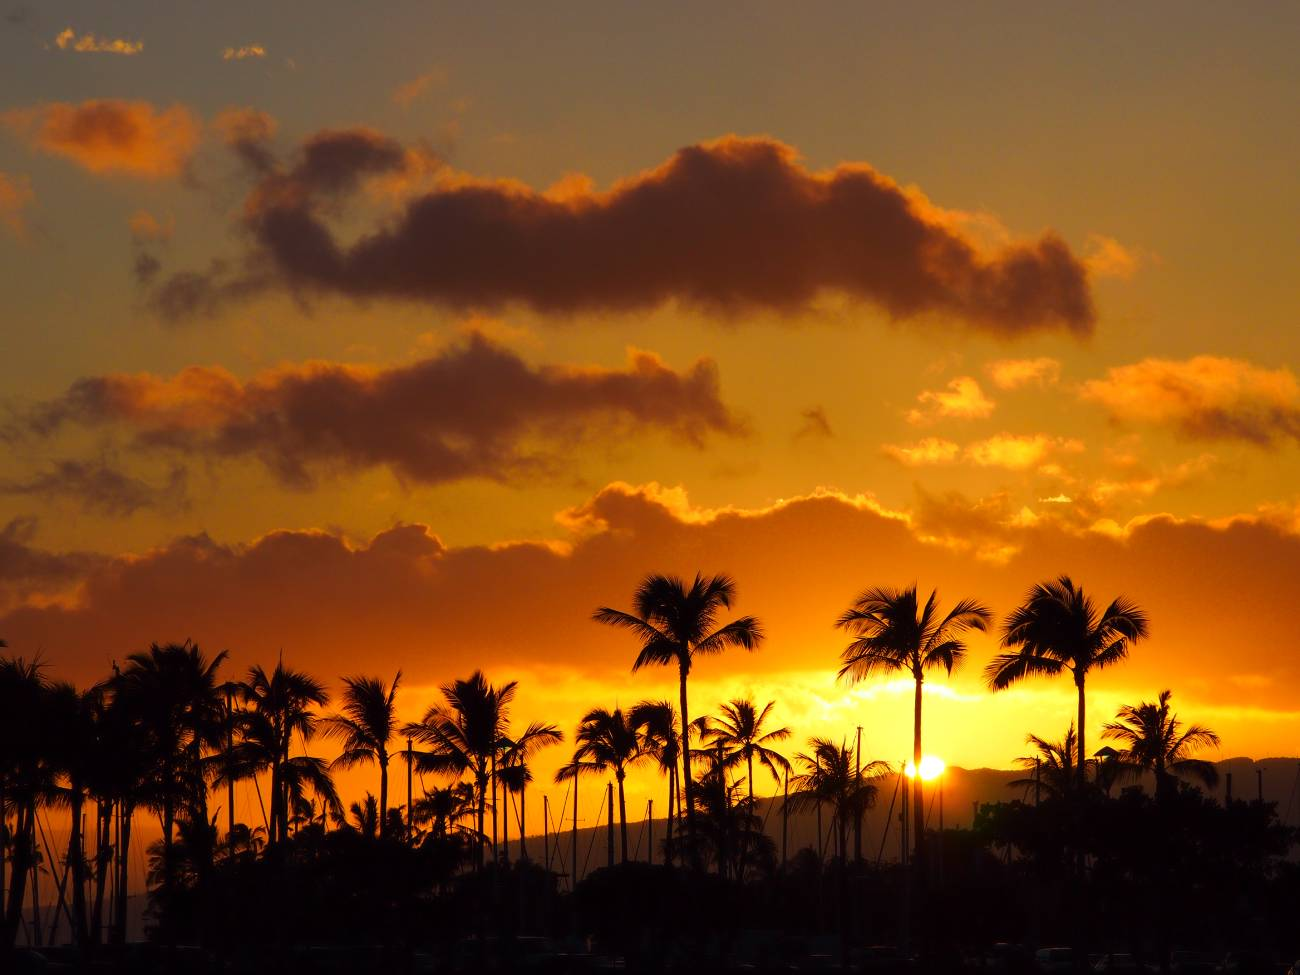 Palm trees silhouetted against a warm orange sunset, photographed with the Olympus 40-150mm f4-5.6 R lens